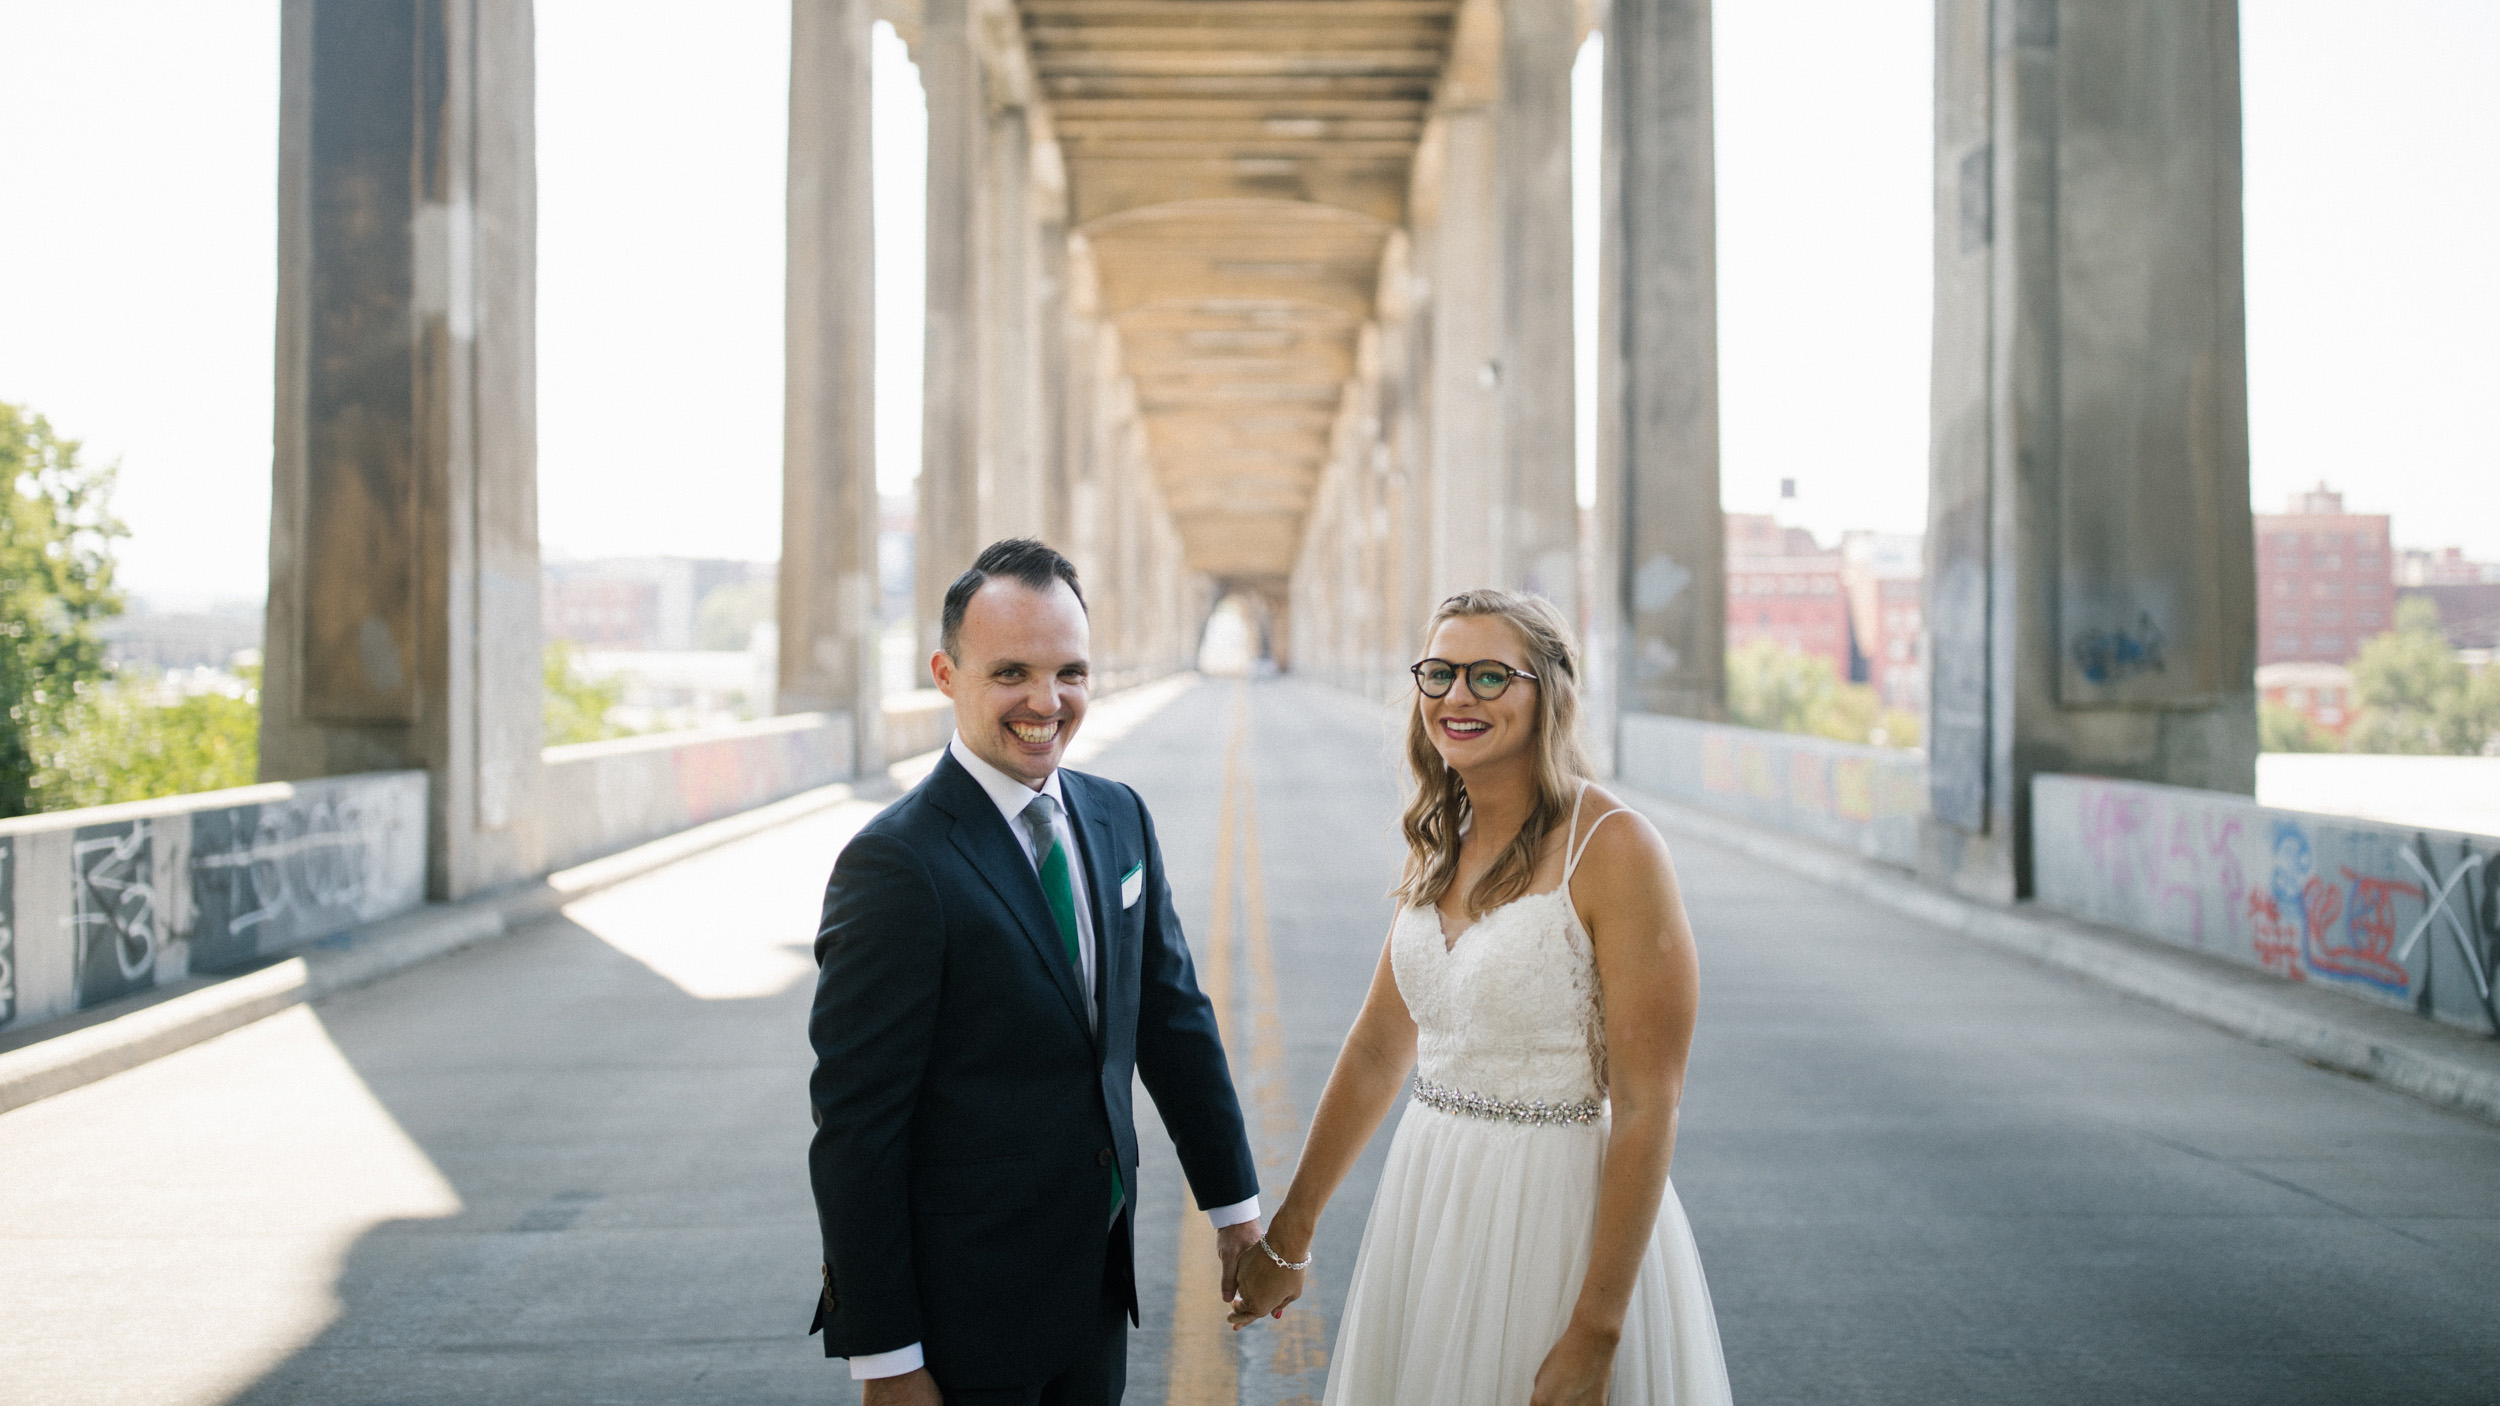 alec_vanderboom_john_micahel_lucy_kansas_city_wedding_photographer-0041.jpg